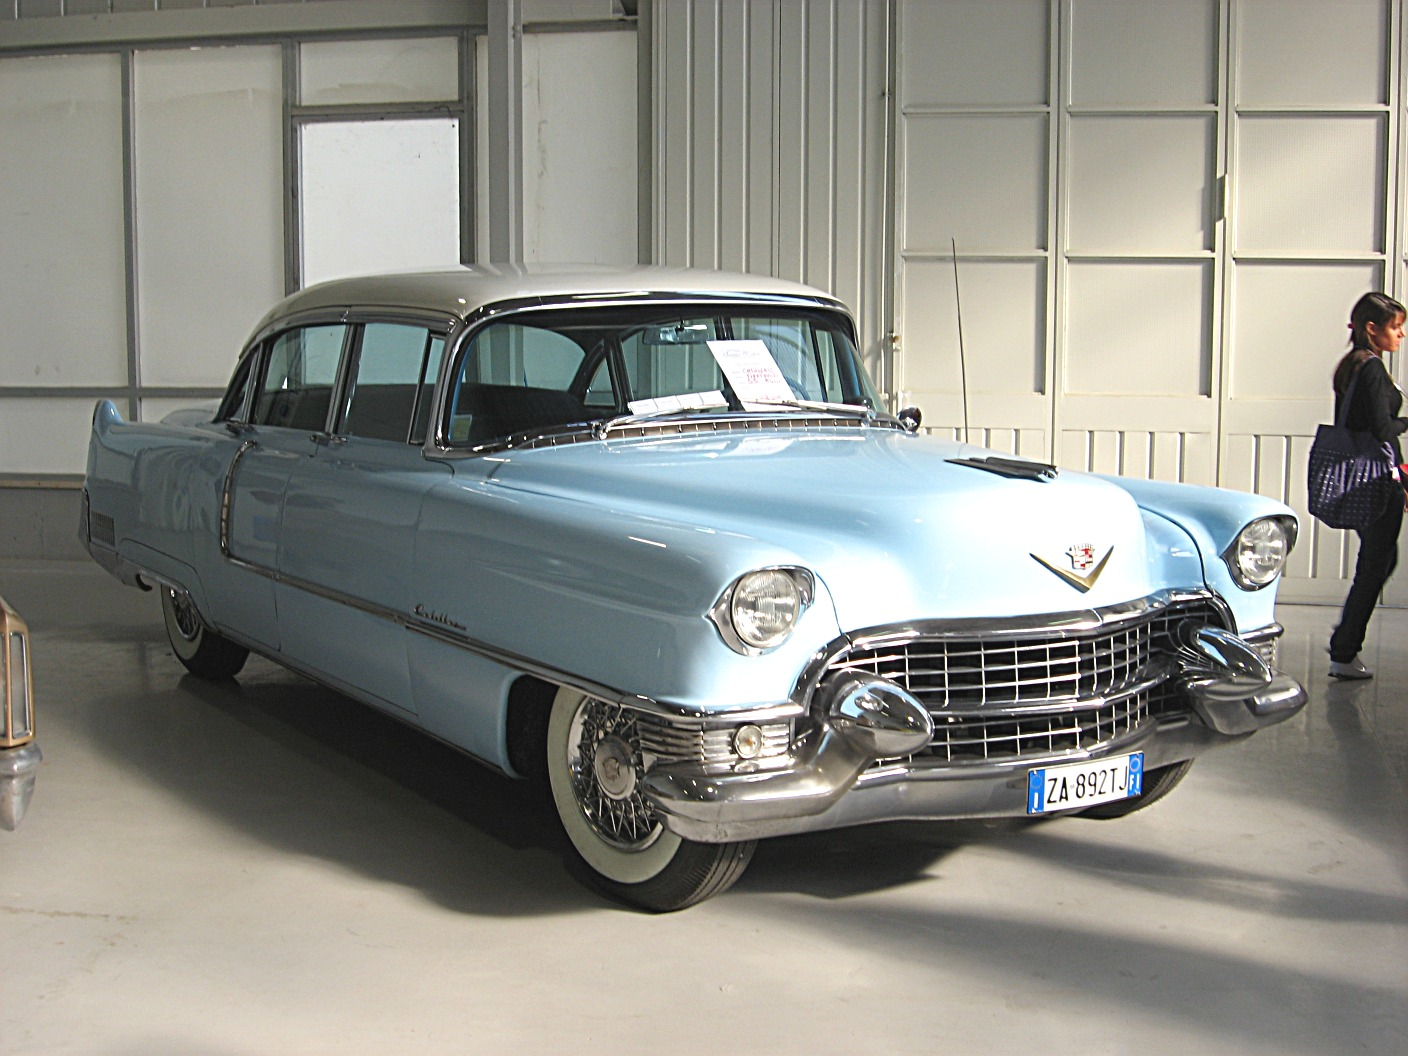 Cadillac Fleetwood 1954 Wallpaper For Background